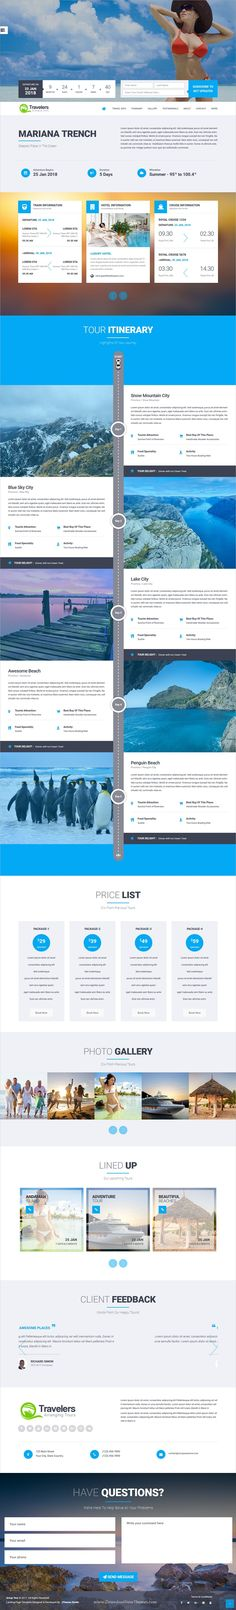 Travellers is a wonderful 5in1 responsive #WordPress theme for professional #tour and #travel agencies landing page websites download now➩ https://themeforest.net/item/travellers-tour-travels-landing-page-wordpress-theme/19317264?ref=Datasata